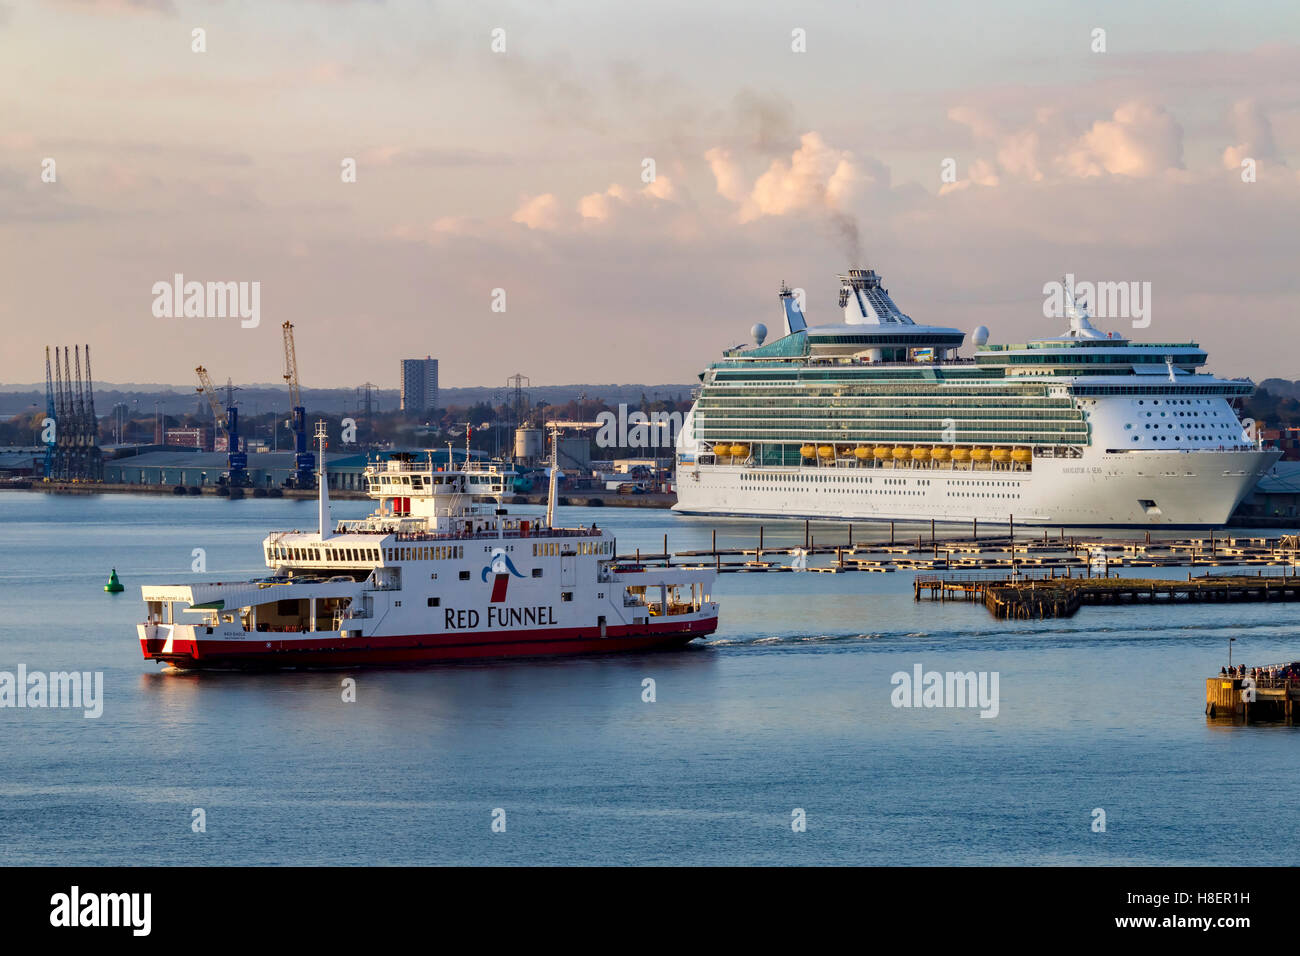 Royal Caribbeans Navigator of the seas moored in Southampton Docks and a Red Funnel ferry leaving port. Stock Photo